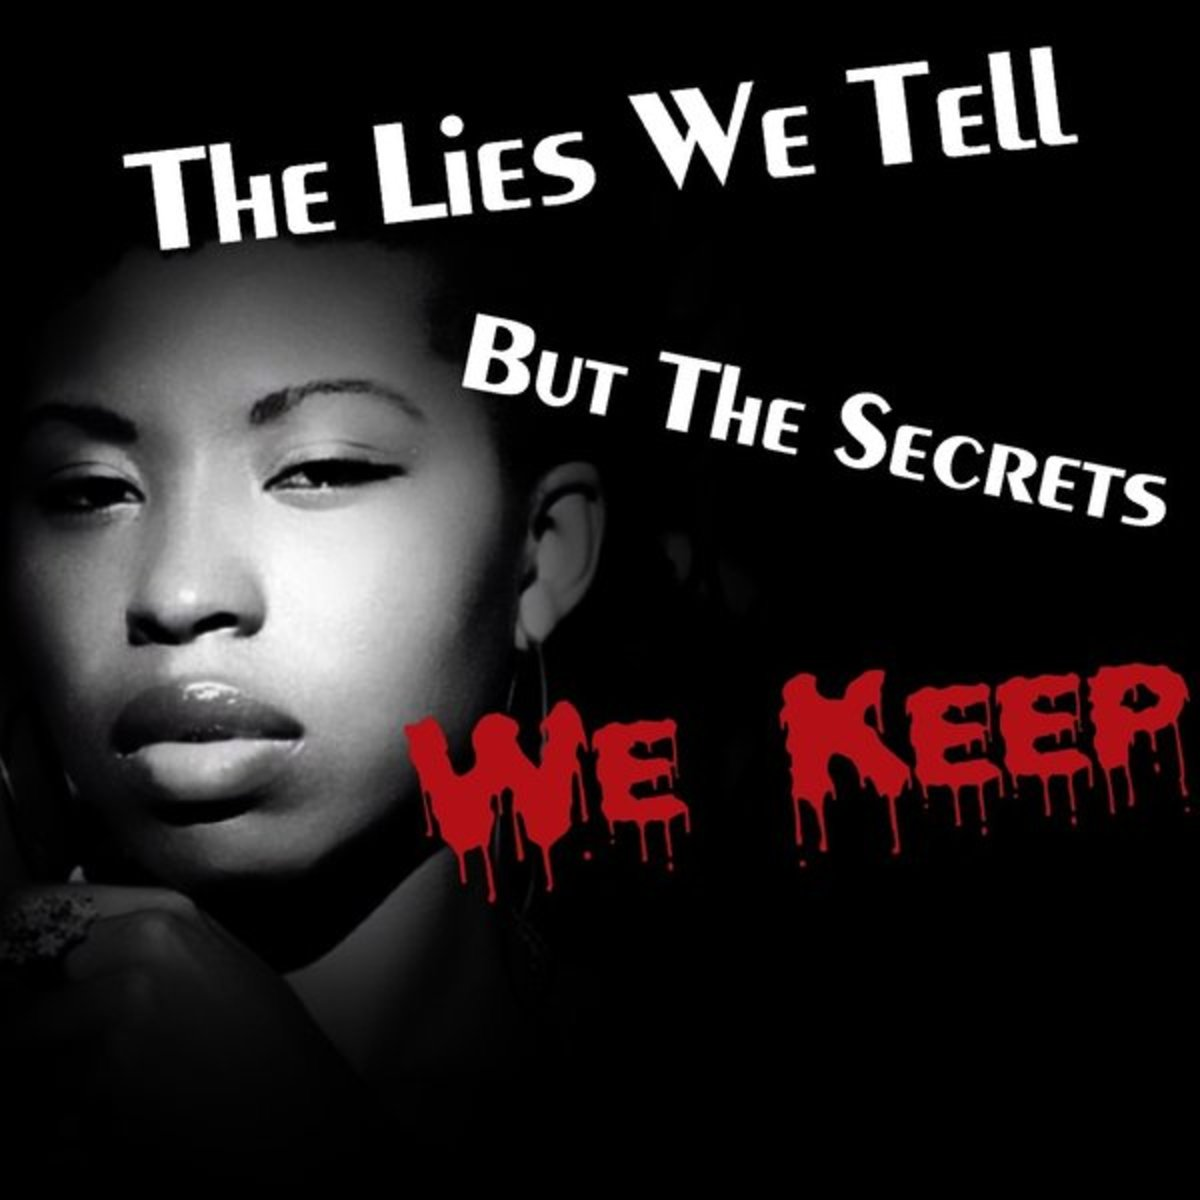 the-lies-we-tell-but-the-secrets-we-keep-part-13